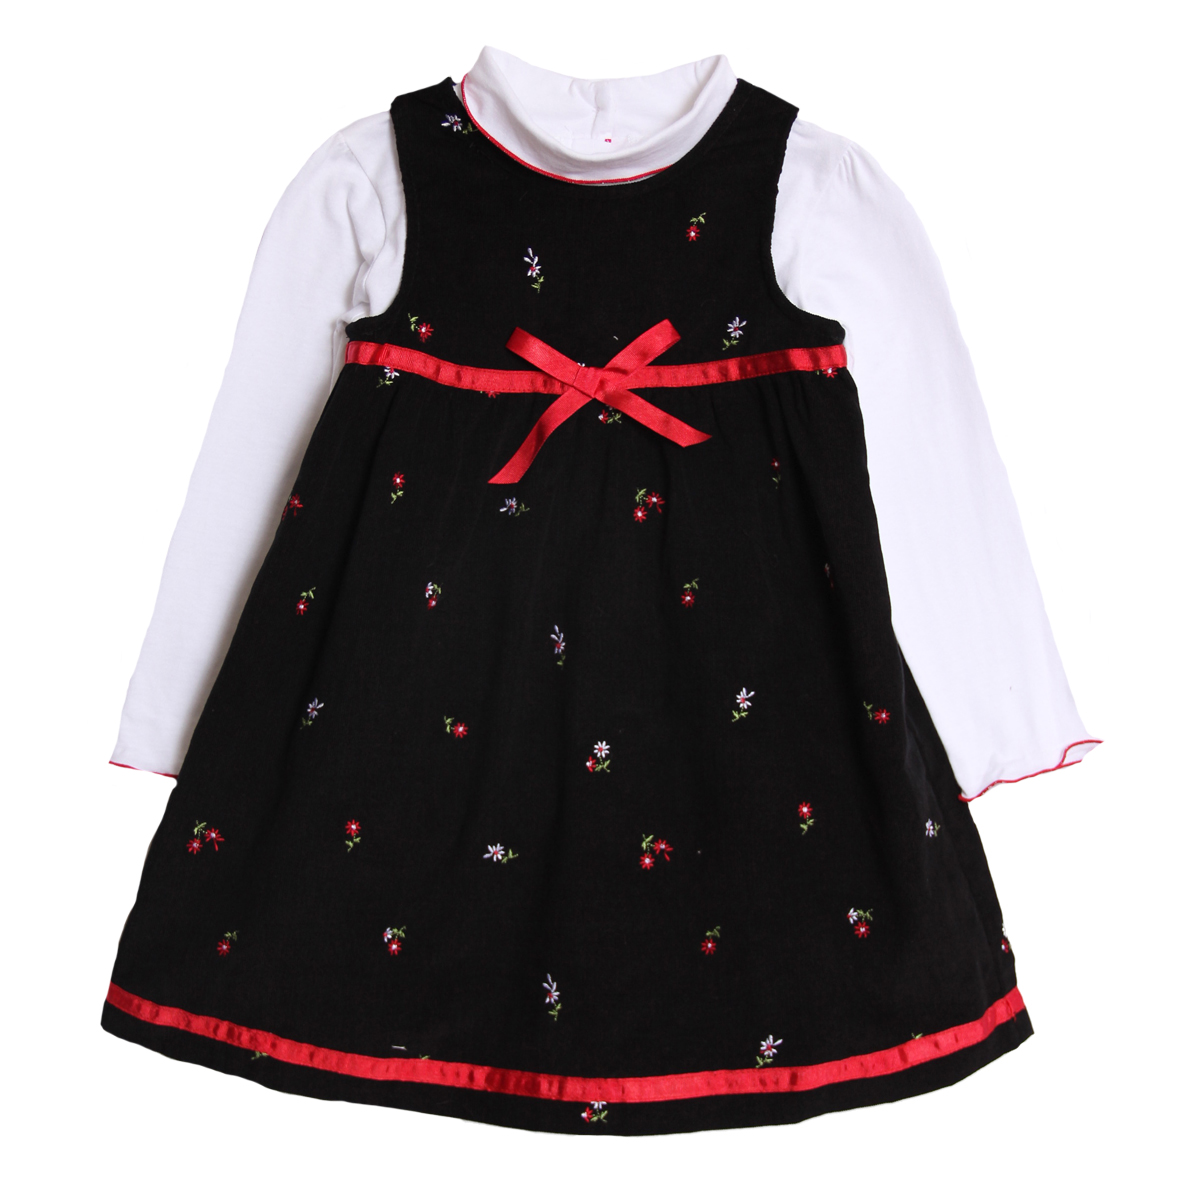 B.T. Kids Little Girls 2 Piece Black Corduroy Holiday Jumper Dress Turtleneck Top at Sears.com